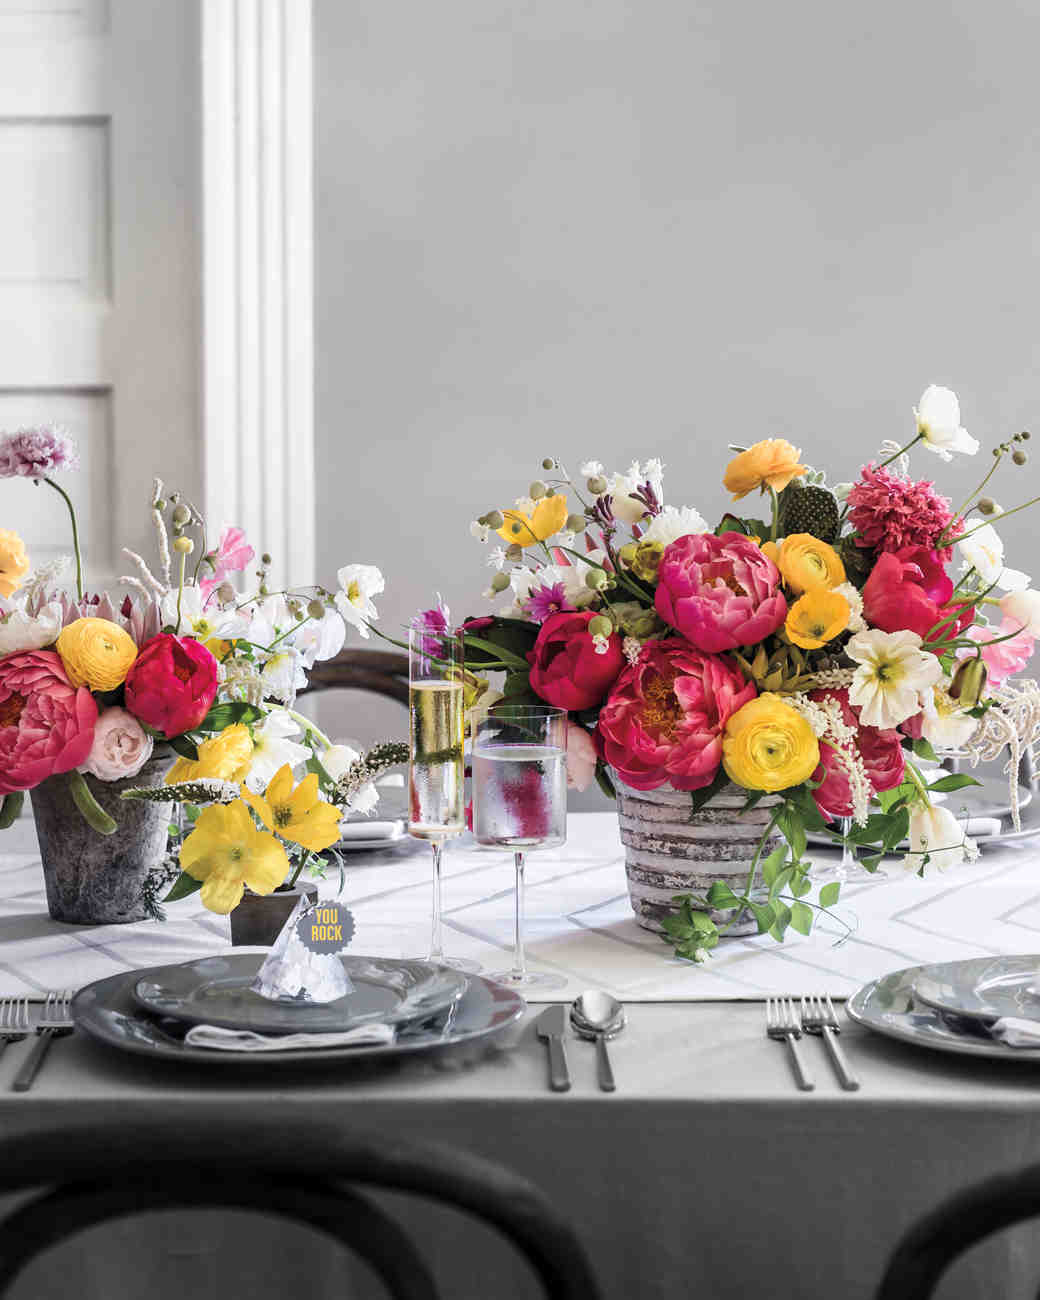 Ideas For Wedding Flowers: Spring Wedding Flower Ideas From The Industry's Best